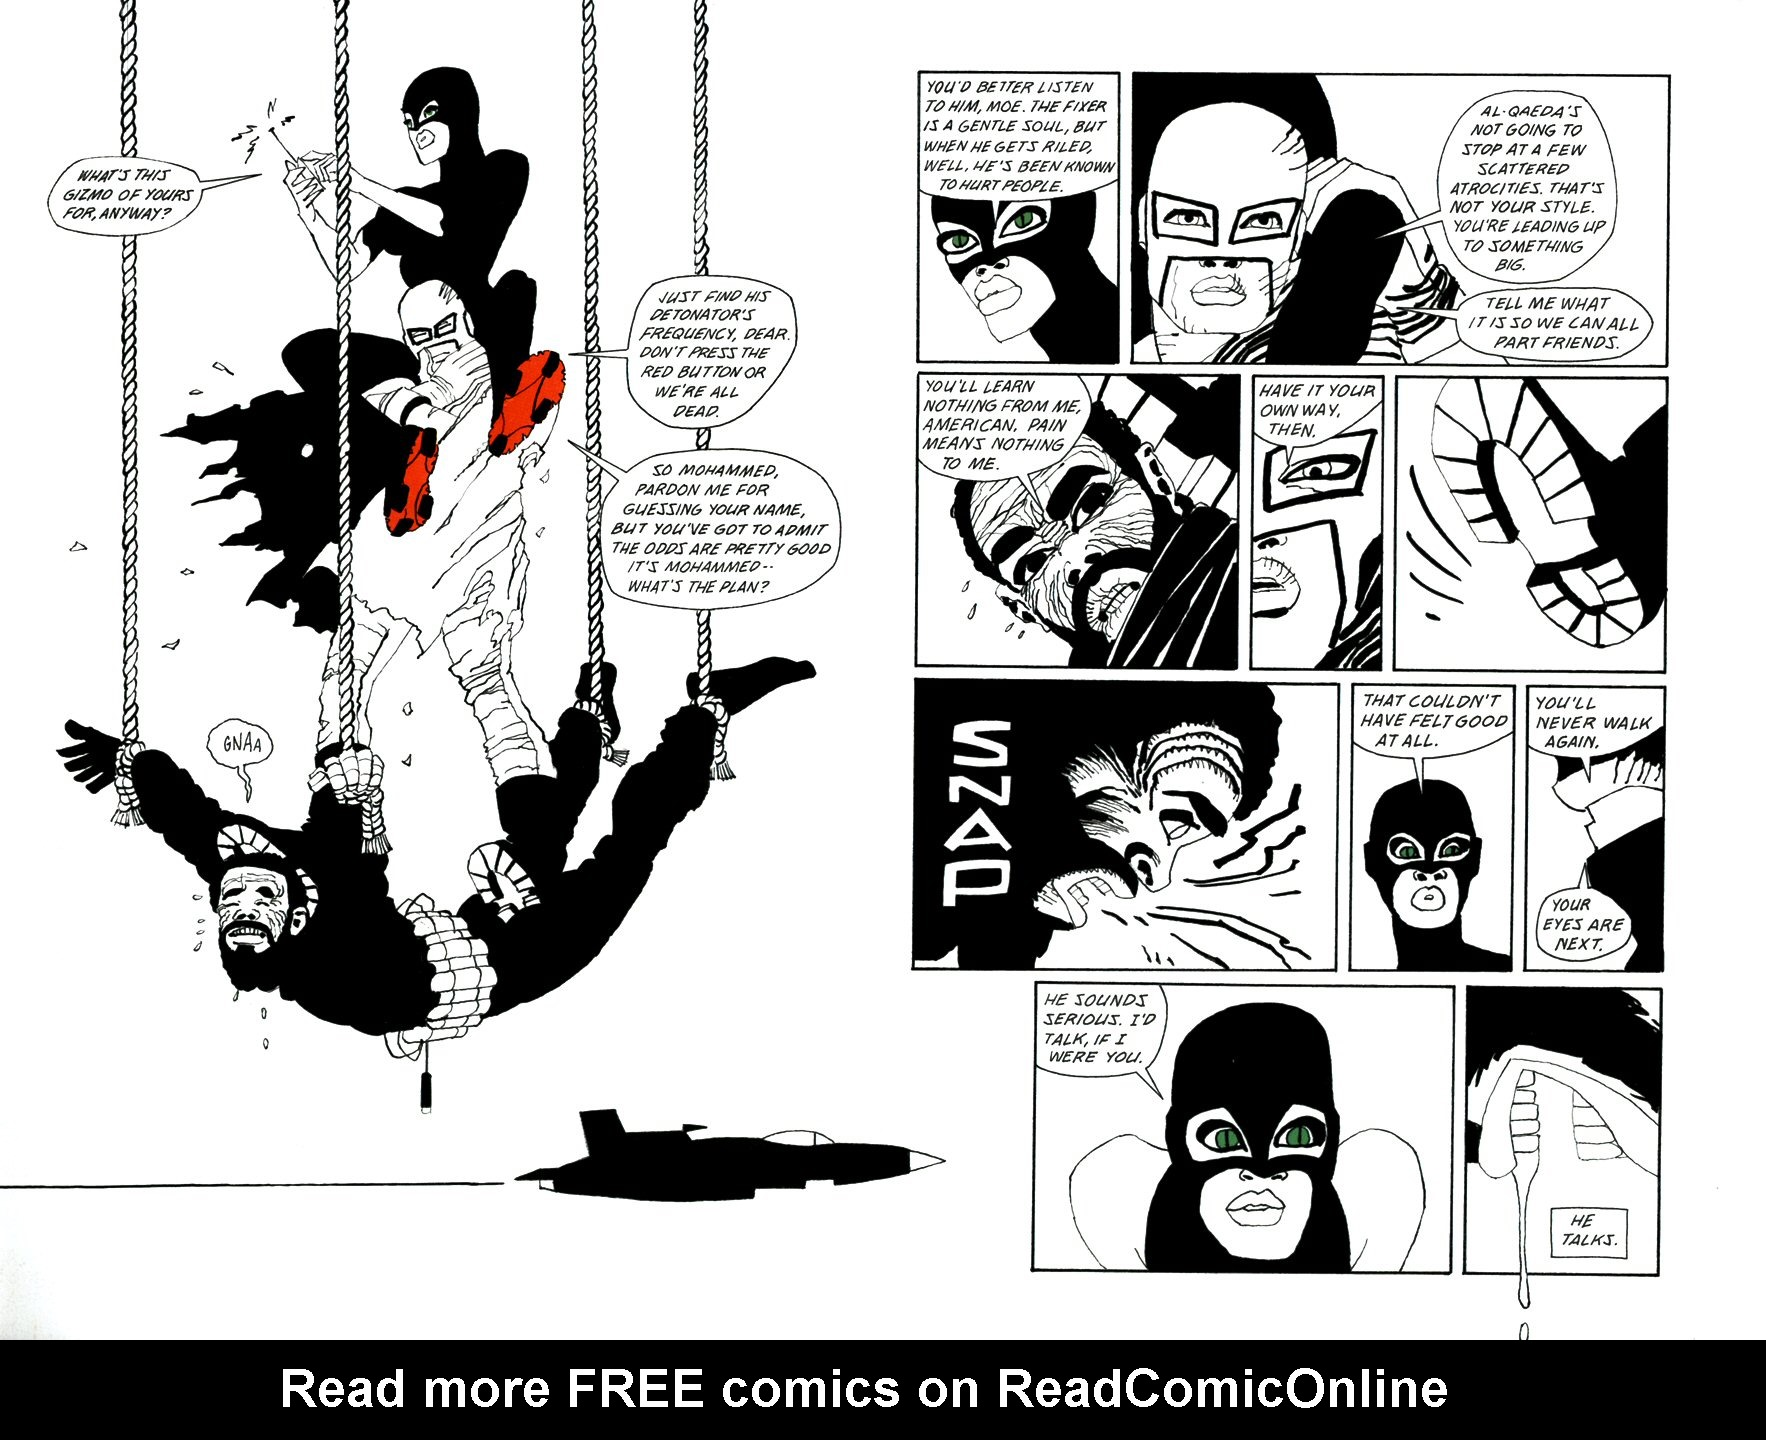 Read online Frank Miller's Holy Terror comic -  Issue # TPB - 83